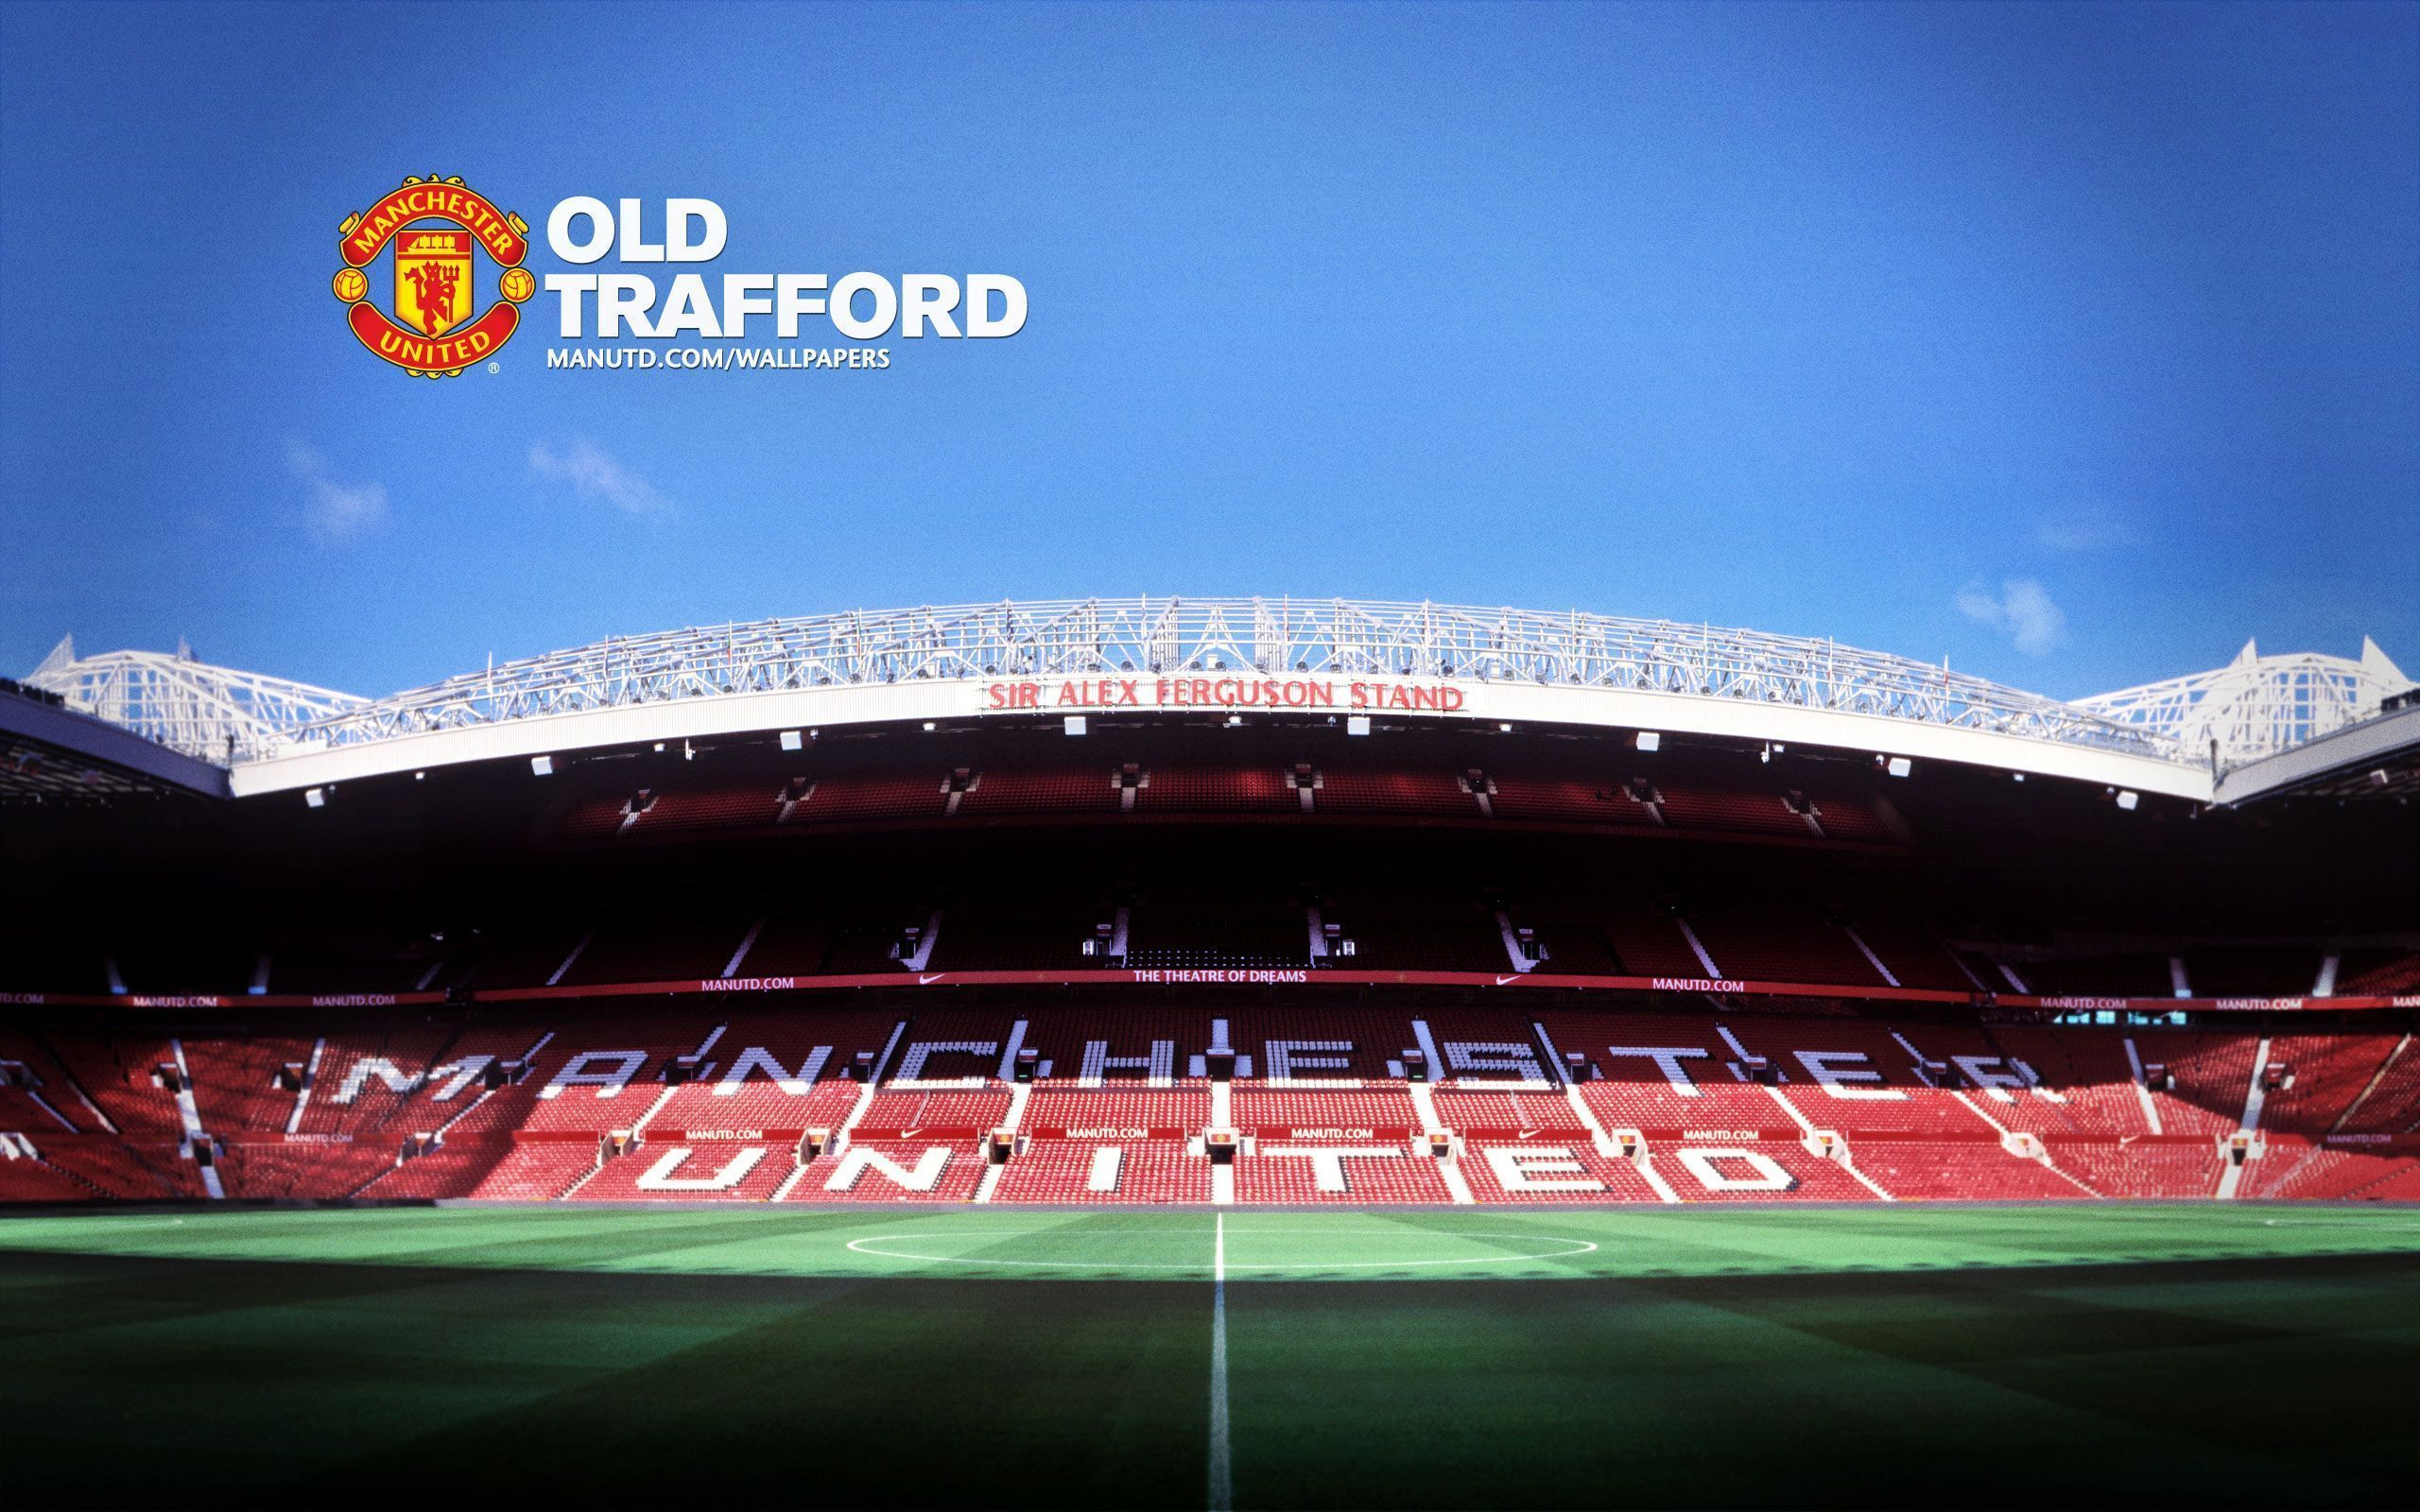 Old Trafford Wallpapers Wallpaper Cave Manchester United Wallpaper Manchester United Trafford